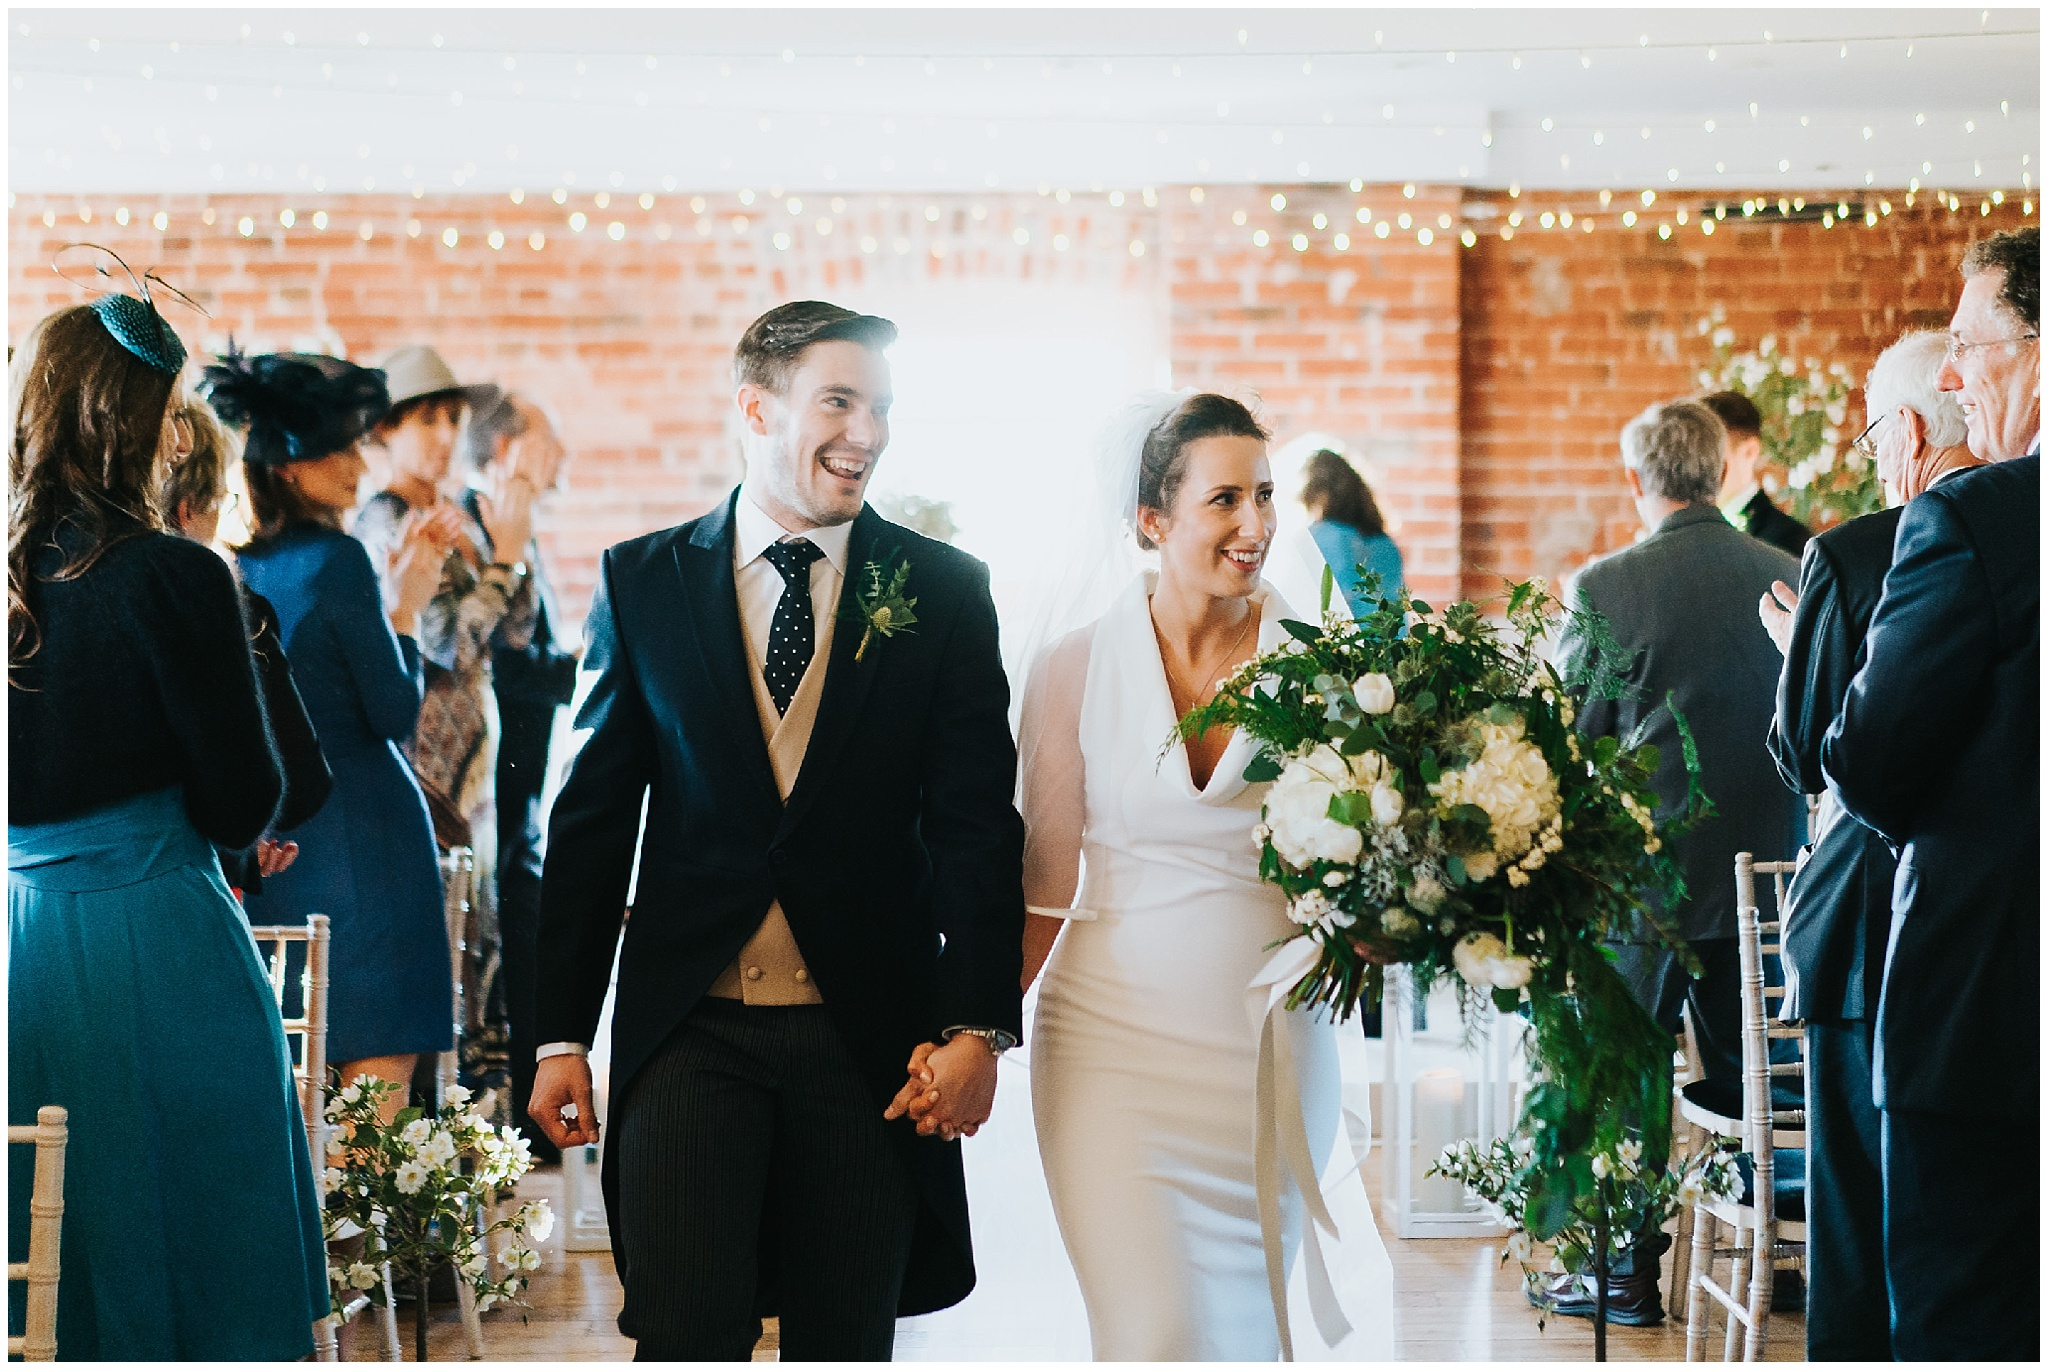 Sopley mill wedding in winter